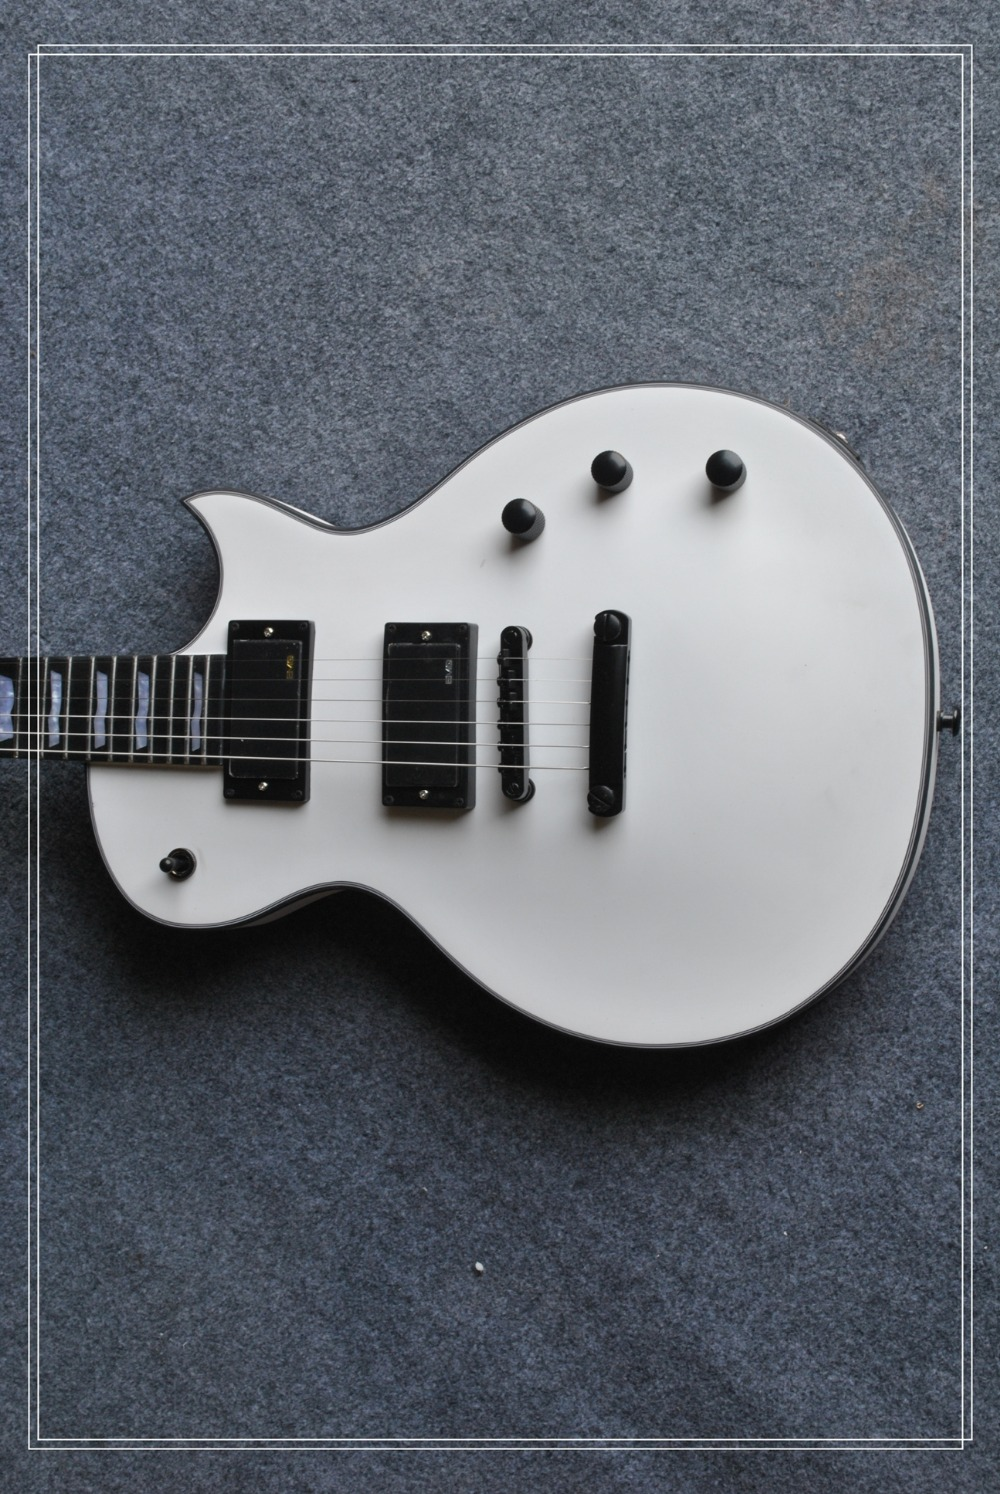 2017 Factory + Satin white ESP Eclipse electric guitar flag inlays ESP custom shop elipse guitar Free Shipping ESP Guitar factory custom shop 2015 newest arrival custom st vintage white electric guitar gold hardware free shipping with case 1 6